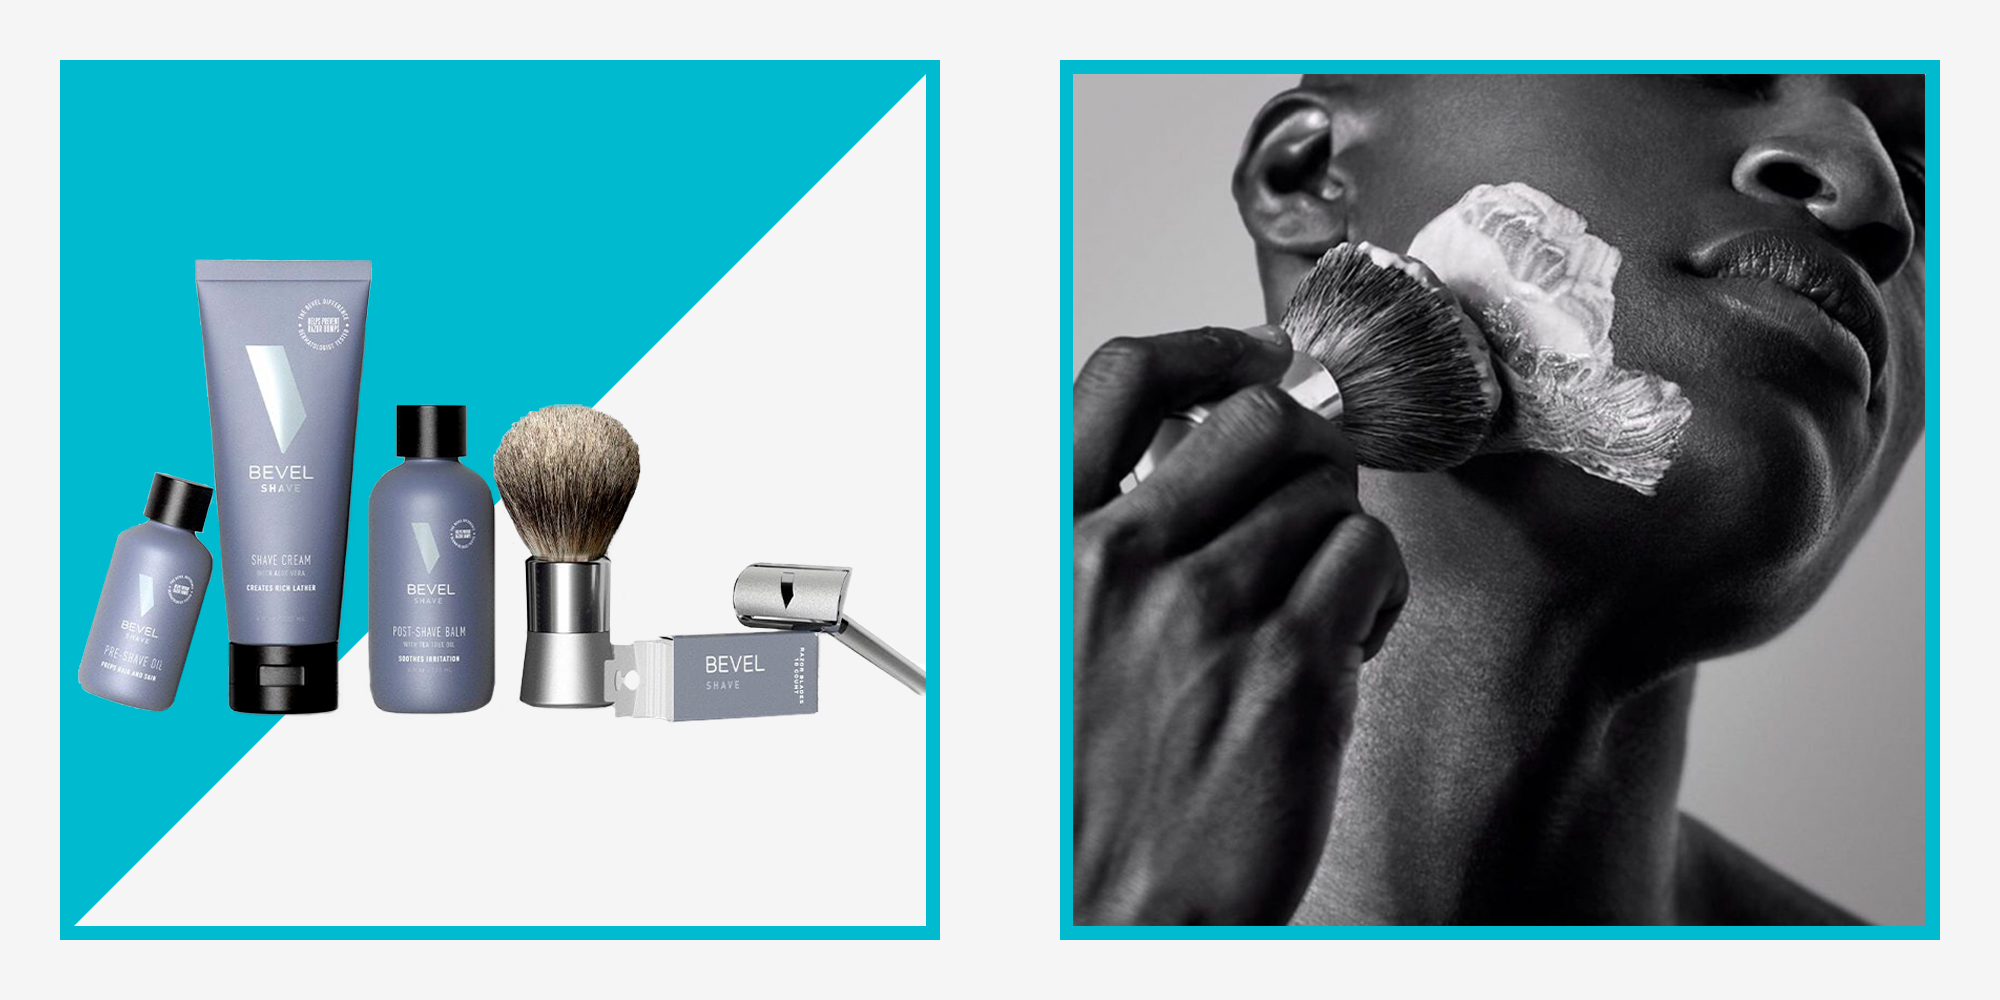 The 10 Best Shave Clubs for Men